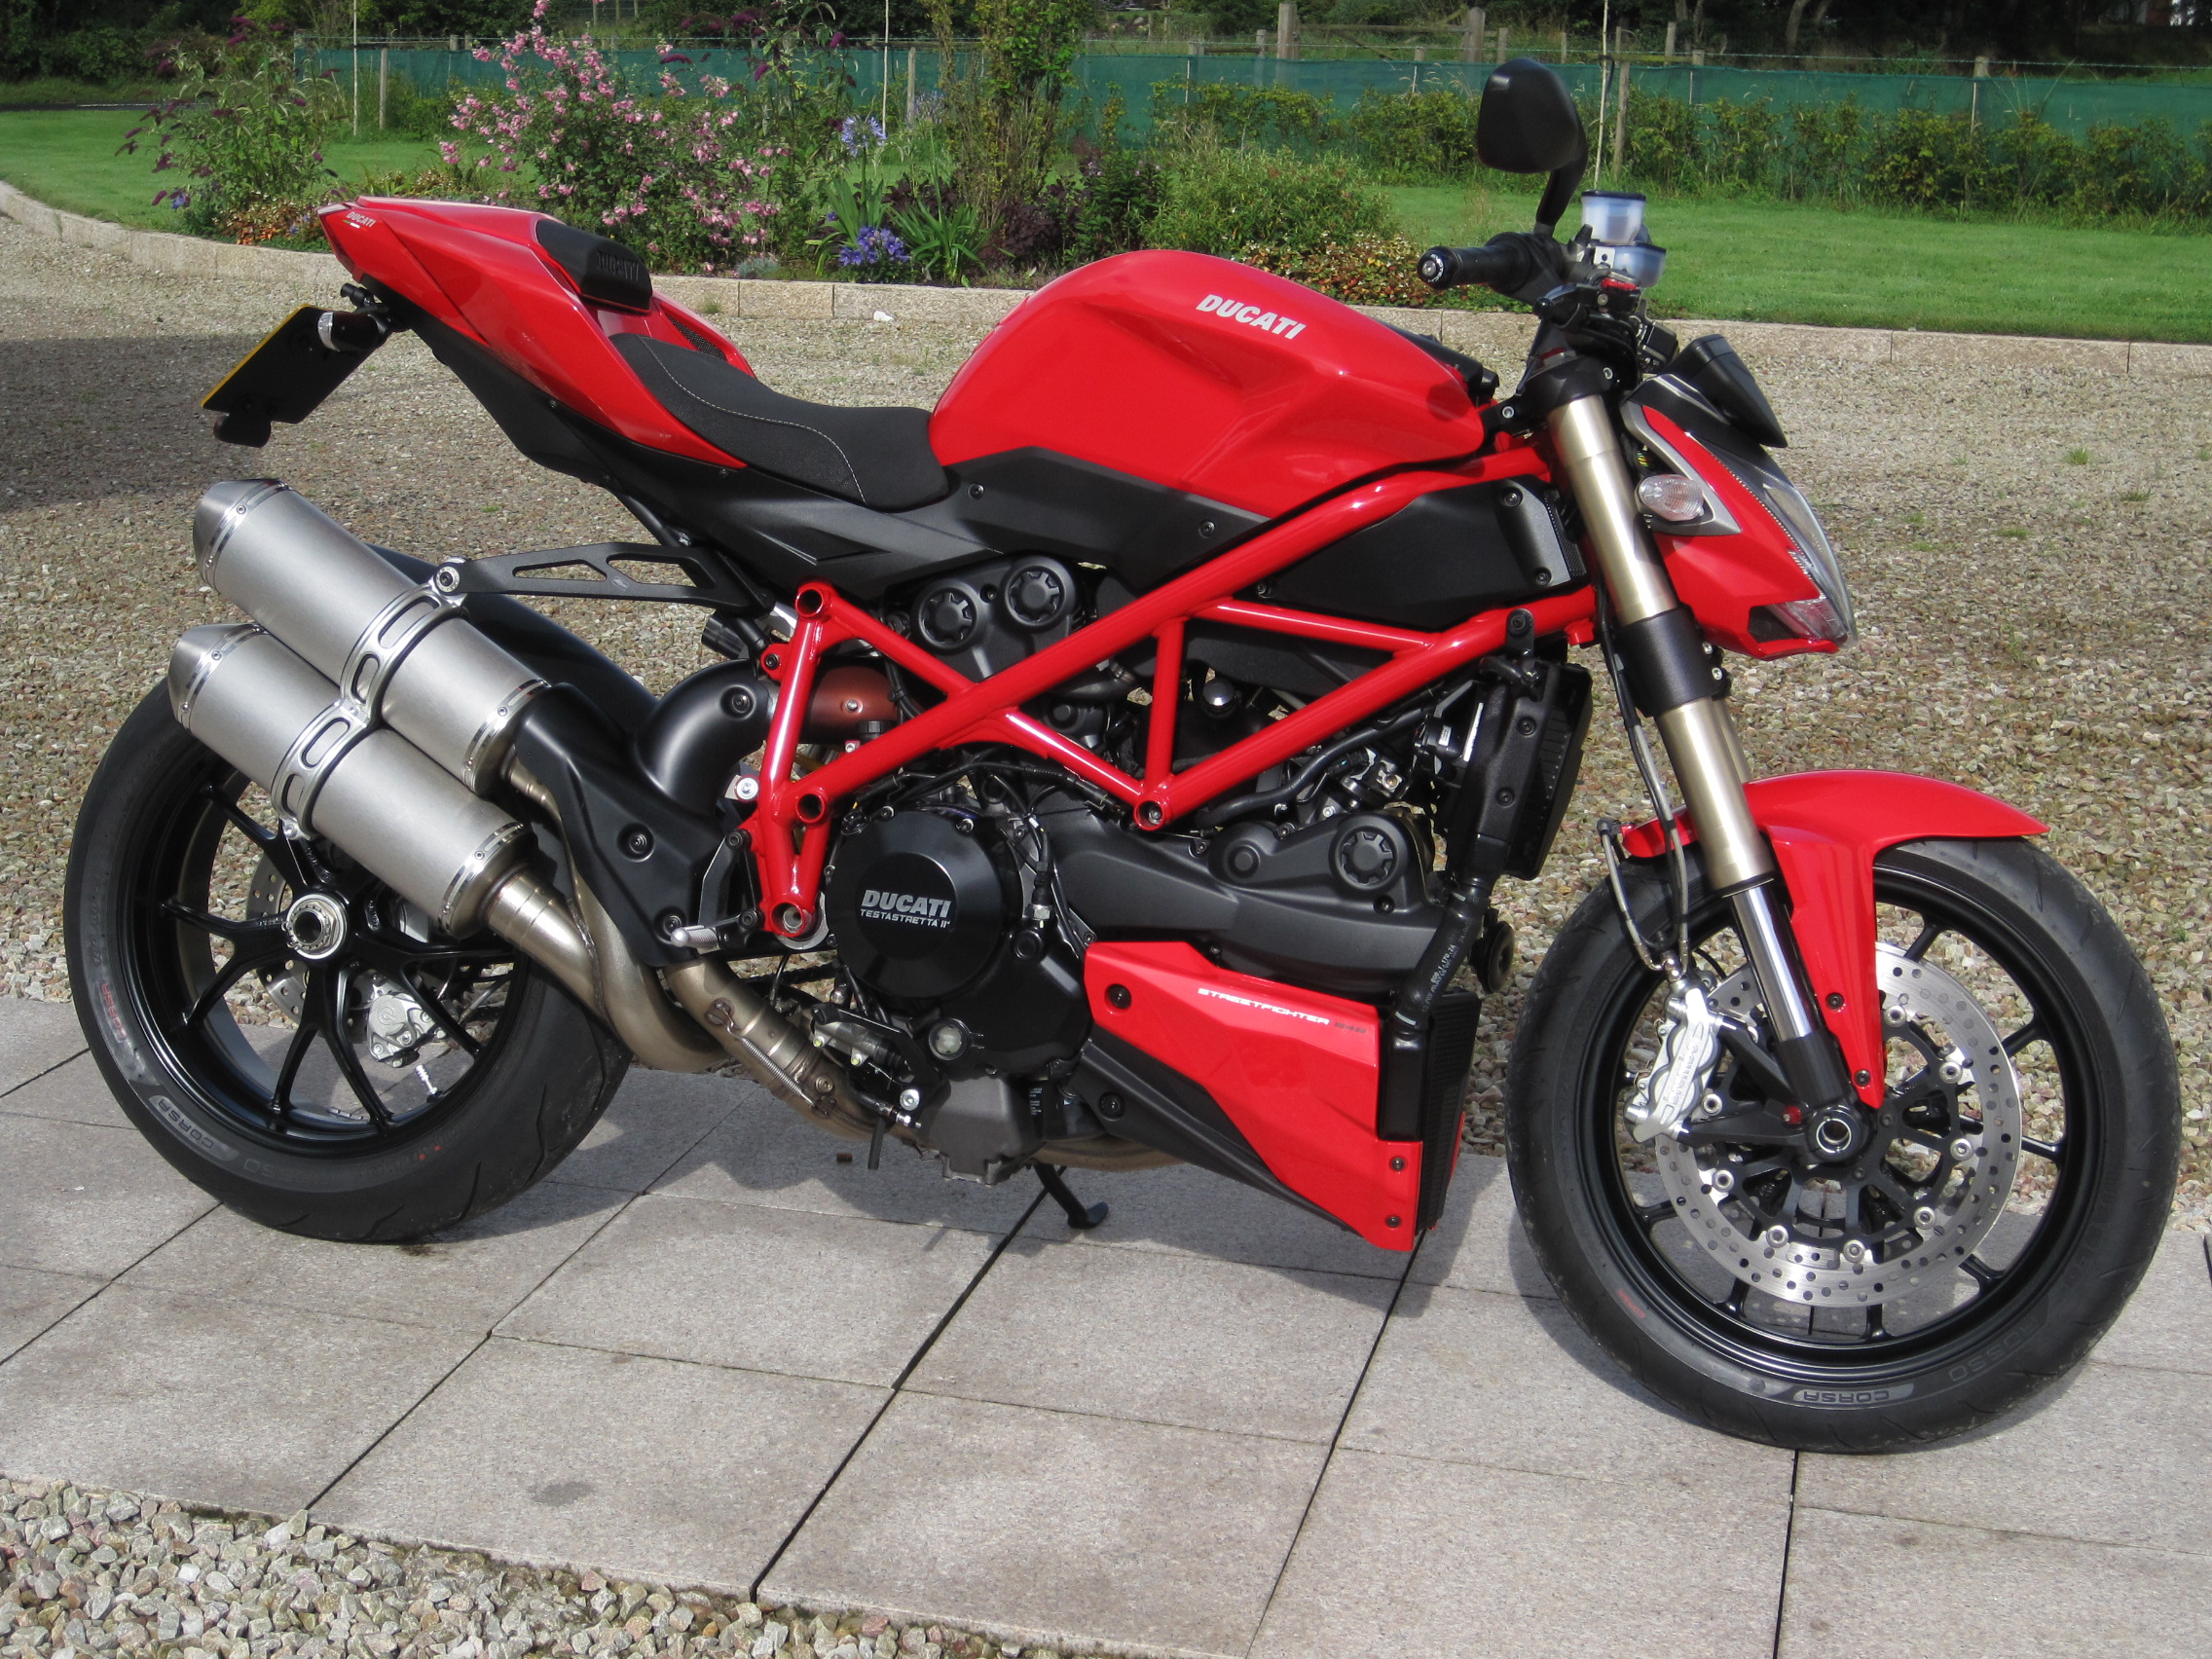 streetfighter gallery page 3 ducati forum. Black Bedroom Furniture Sets. Home Design Ideas